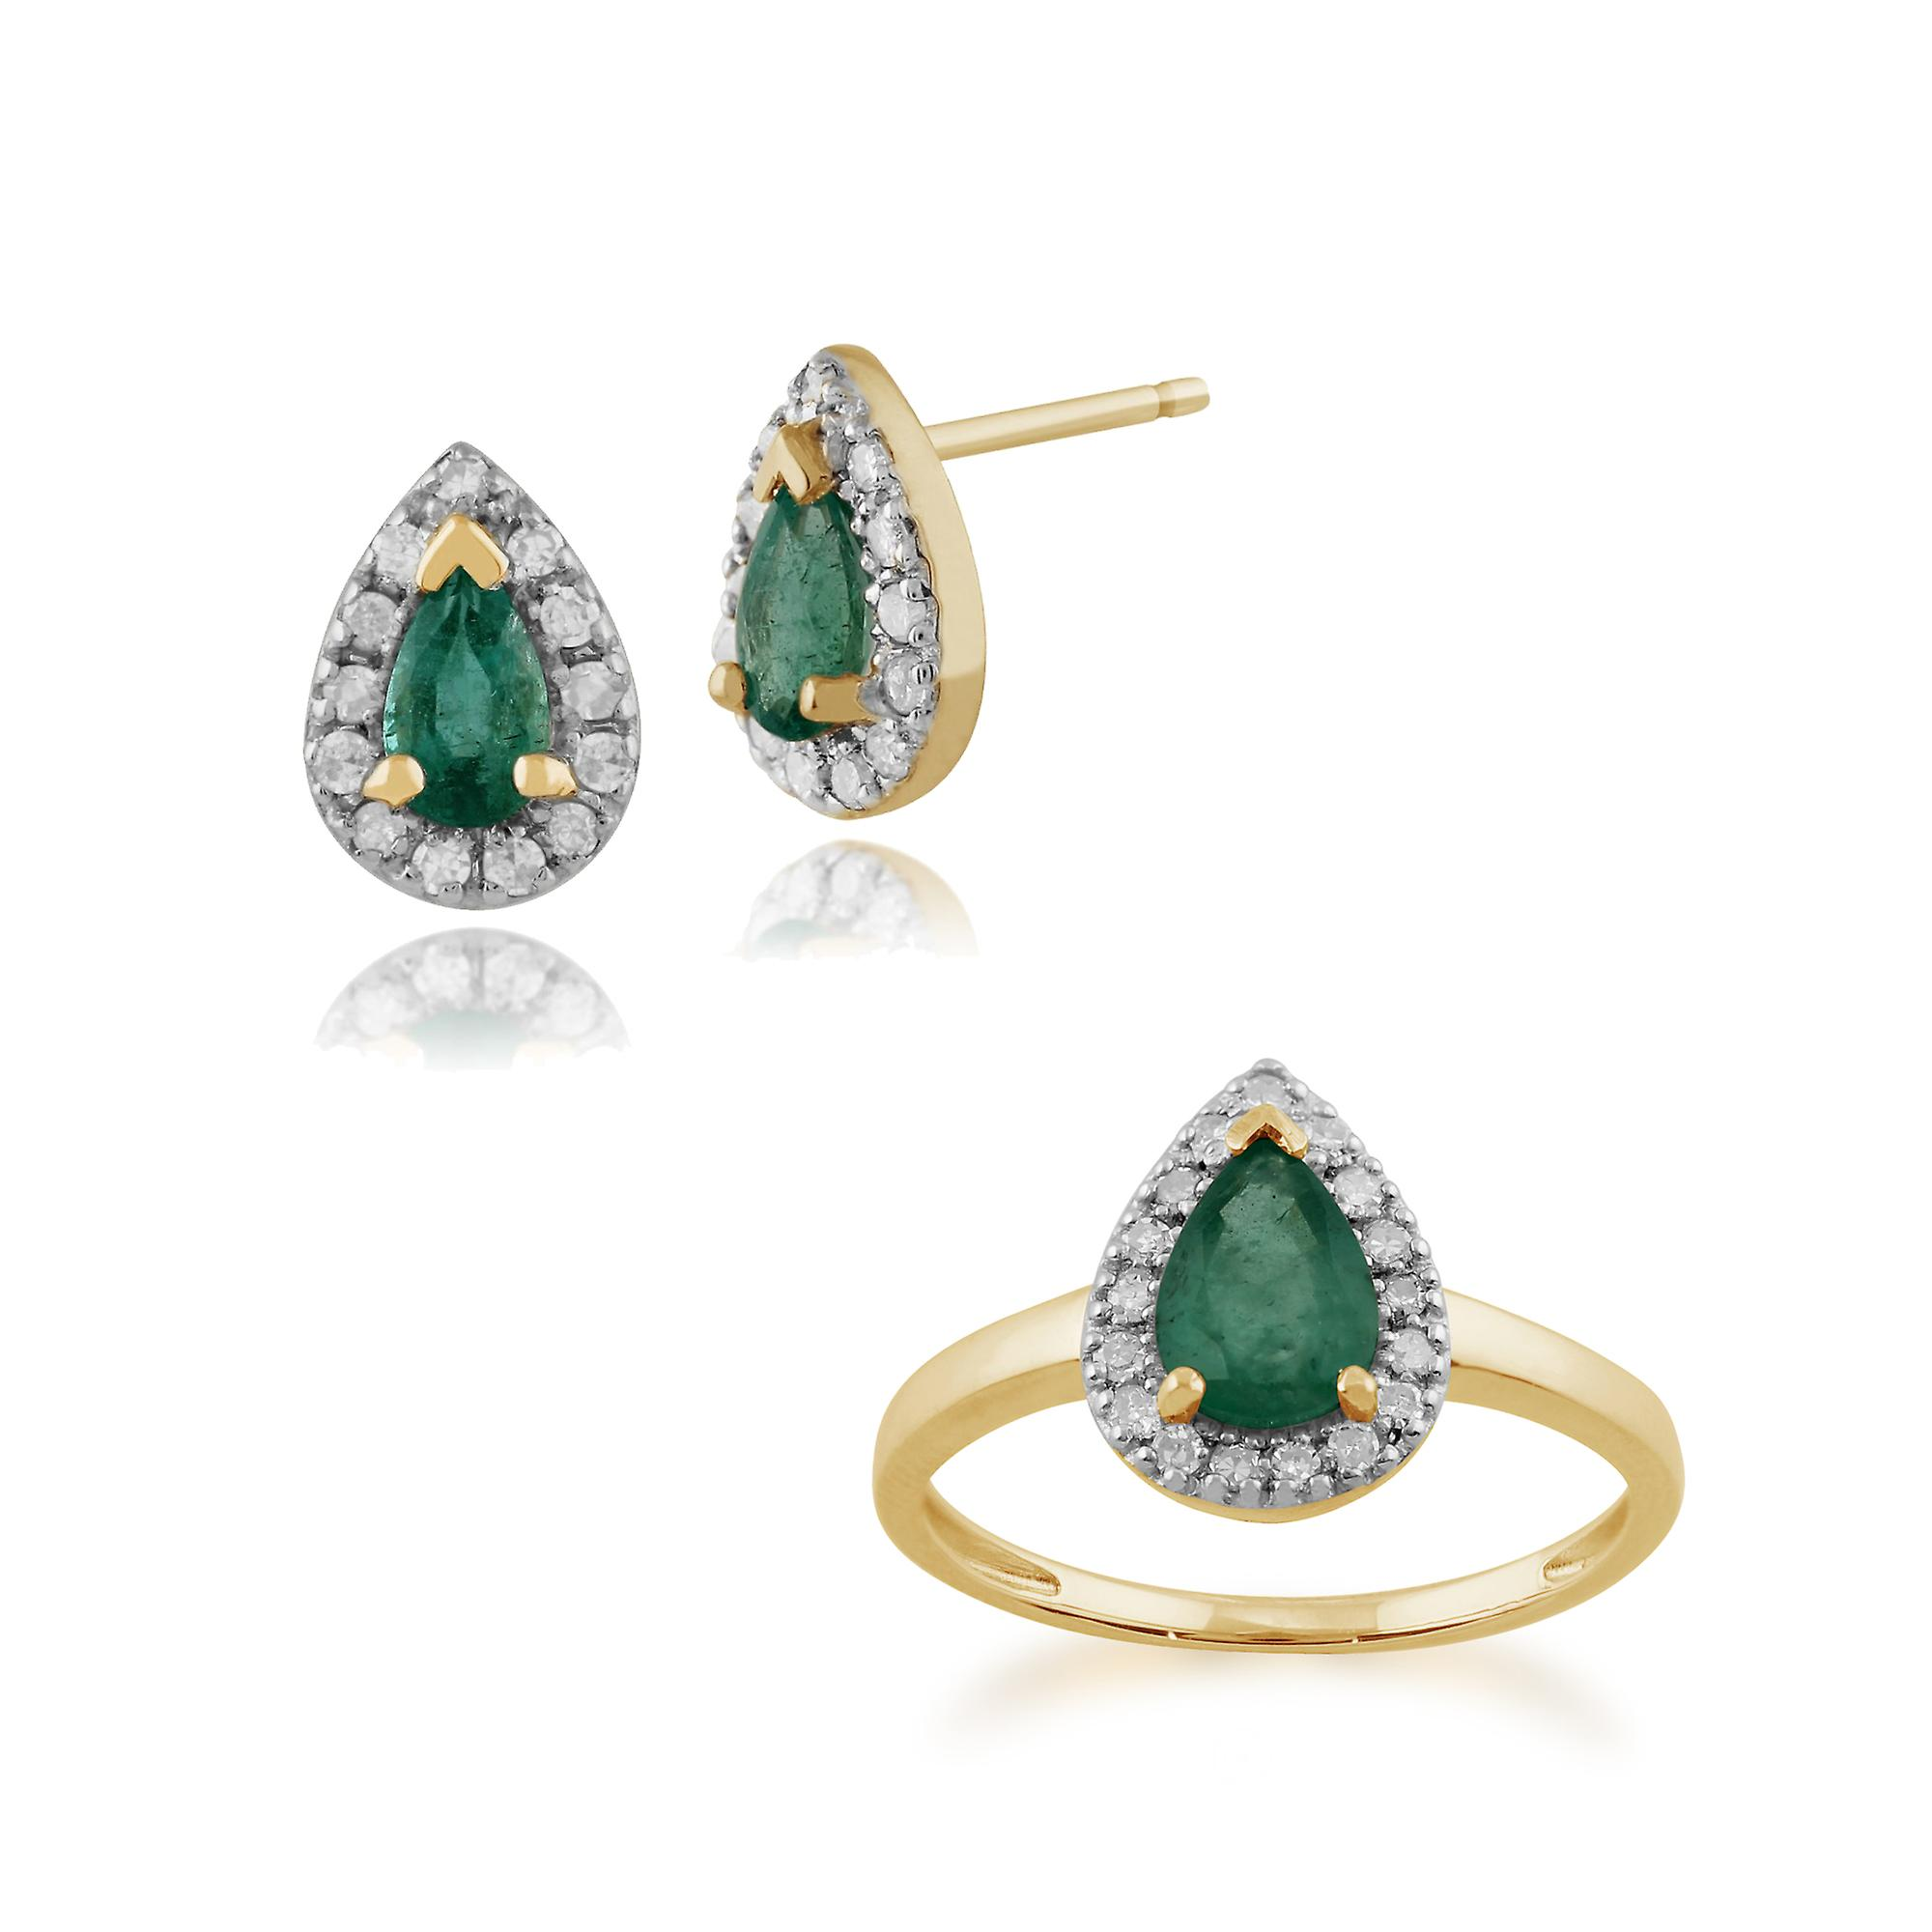 Gemondo 9ct Yellow Gold Emerald & Diamond Pear Cluster Stud Earring & Ring Set